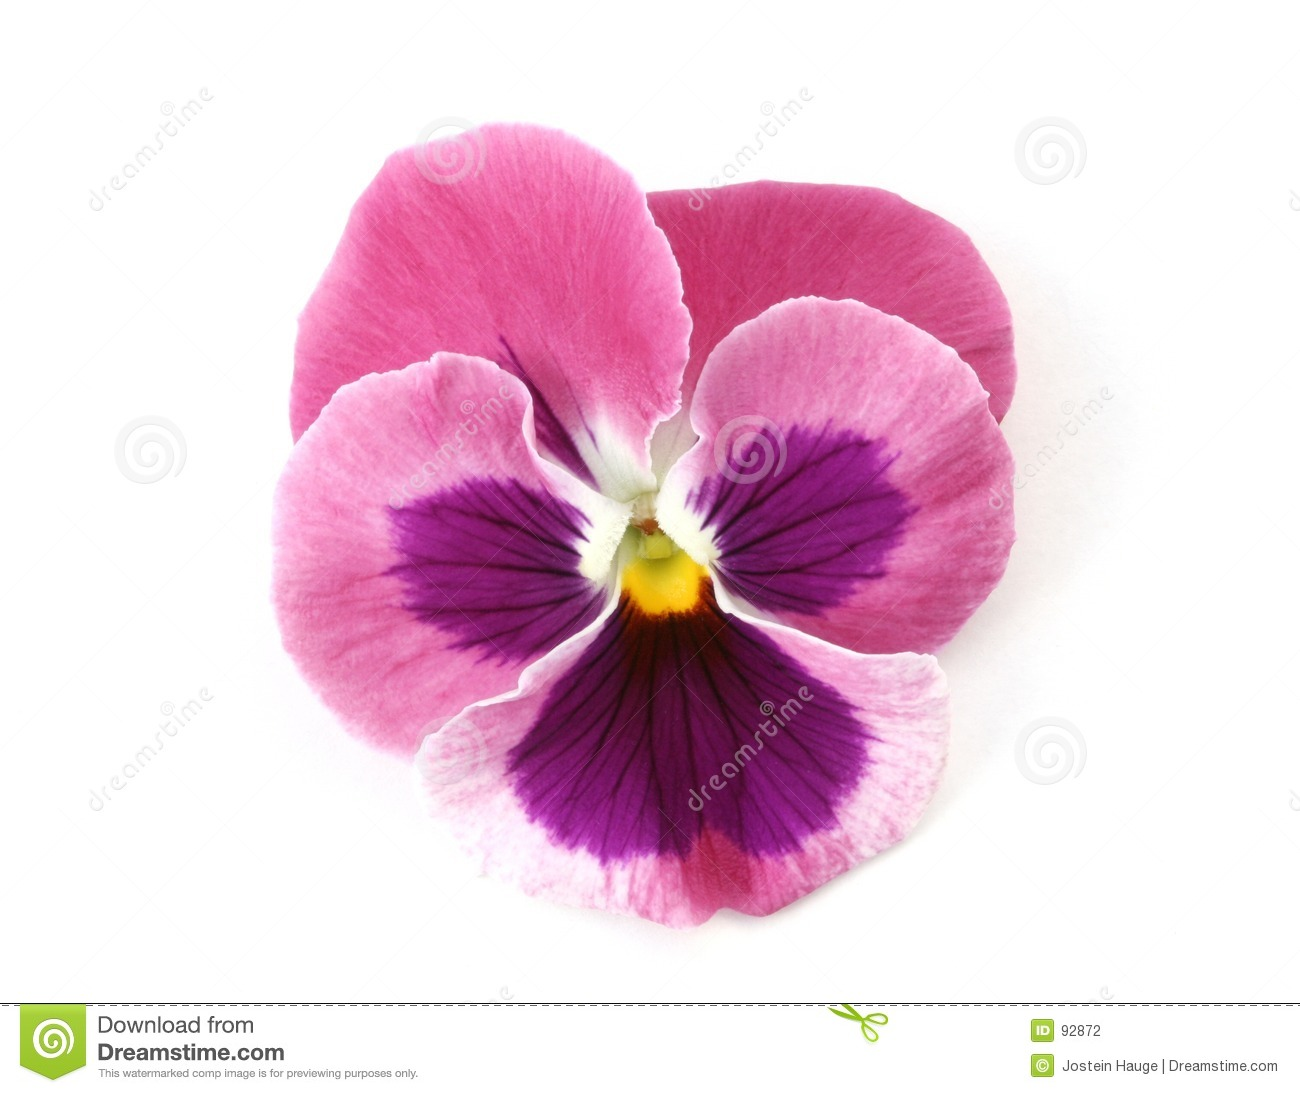 Design Elements: Pink Pansy Stock Photography - Image: 92872